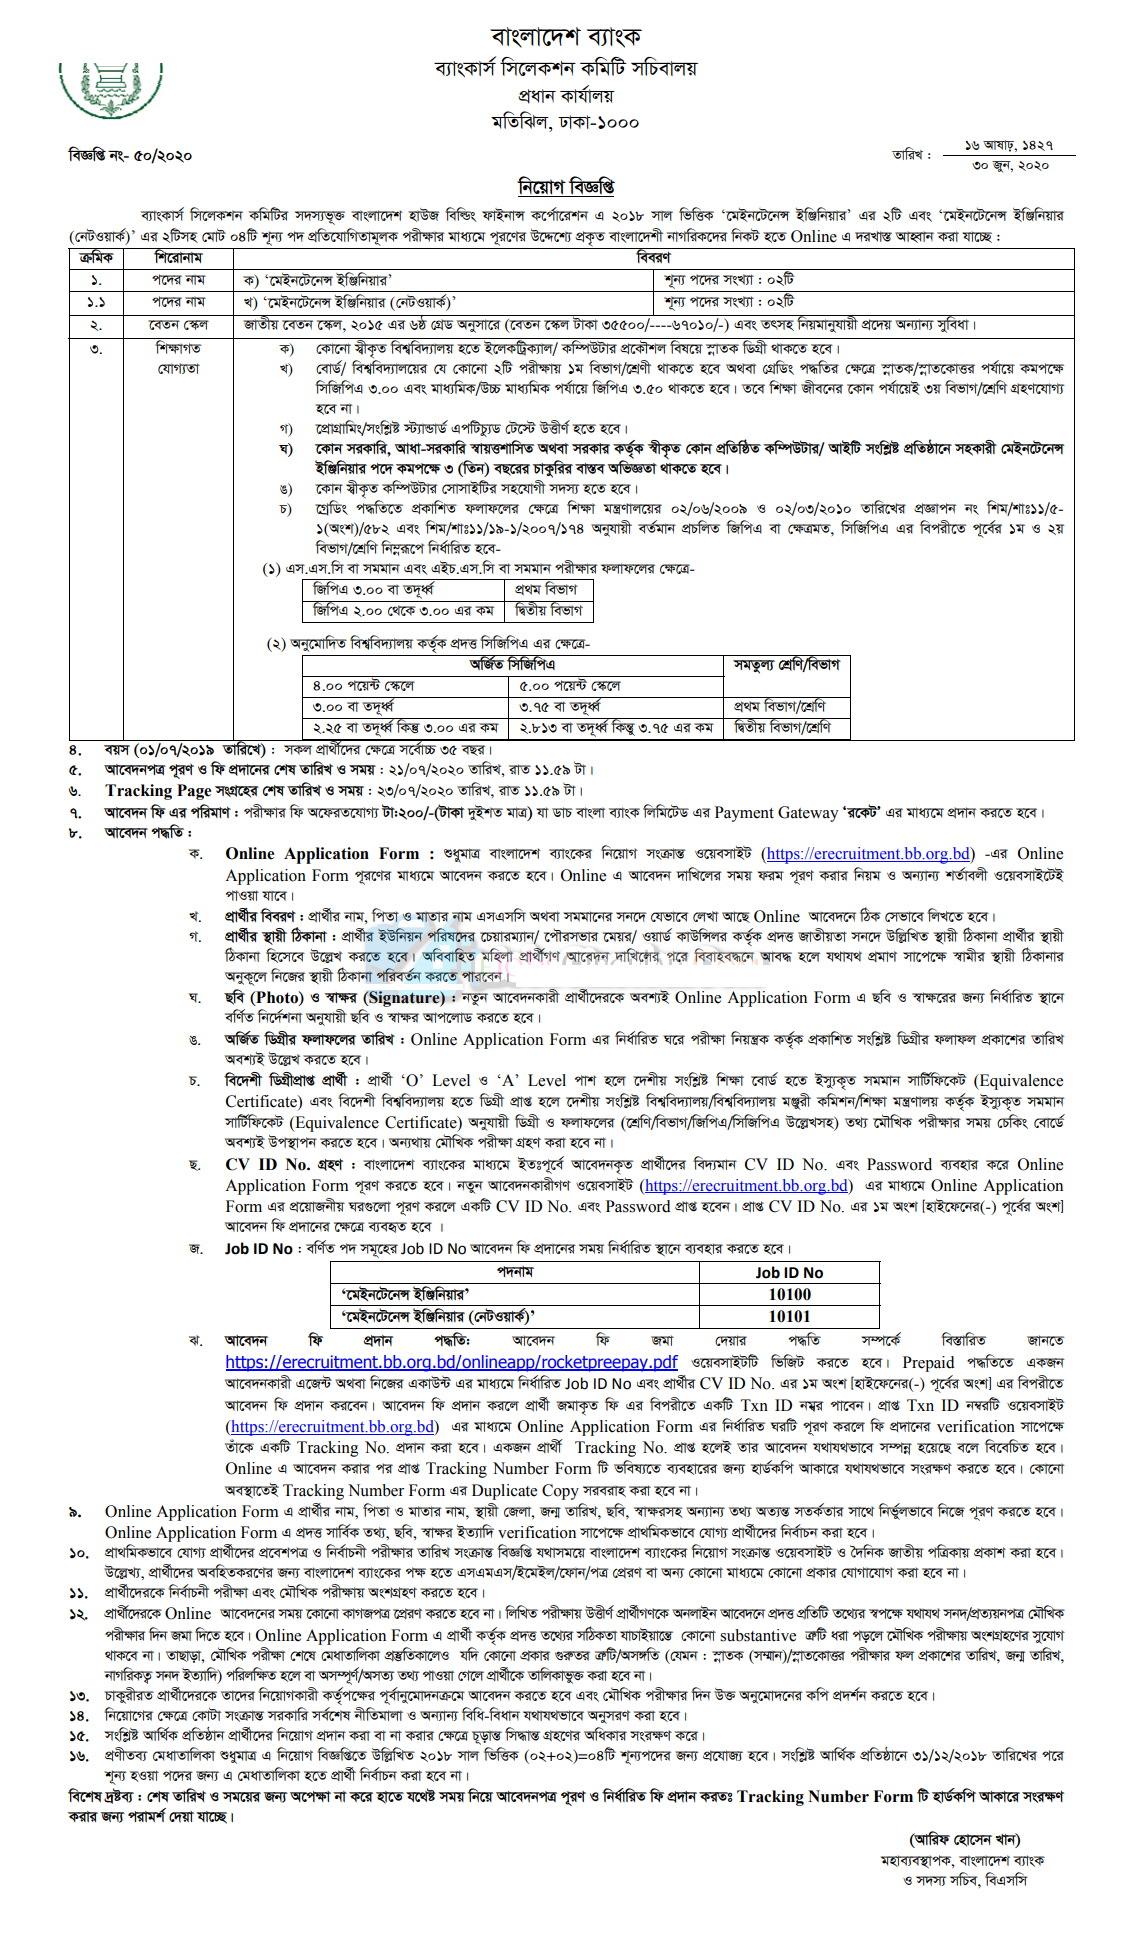 Bangladesh House Building Finance Corporation (BHBFC) Job Circular 2020